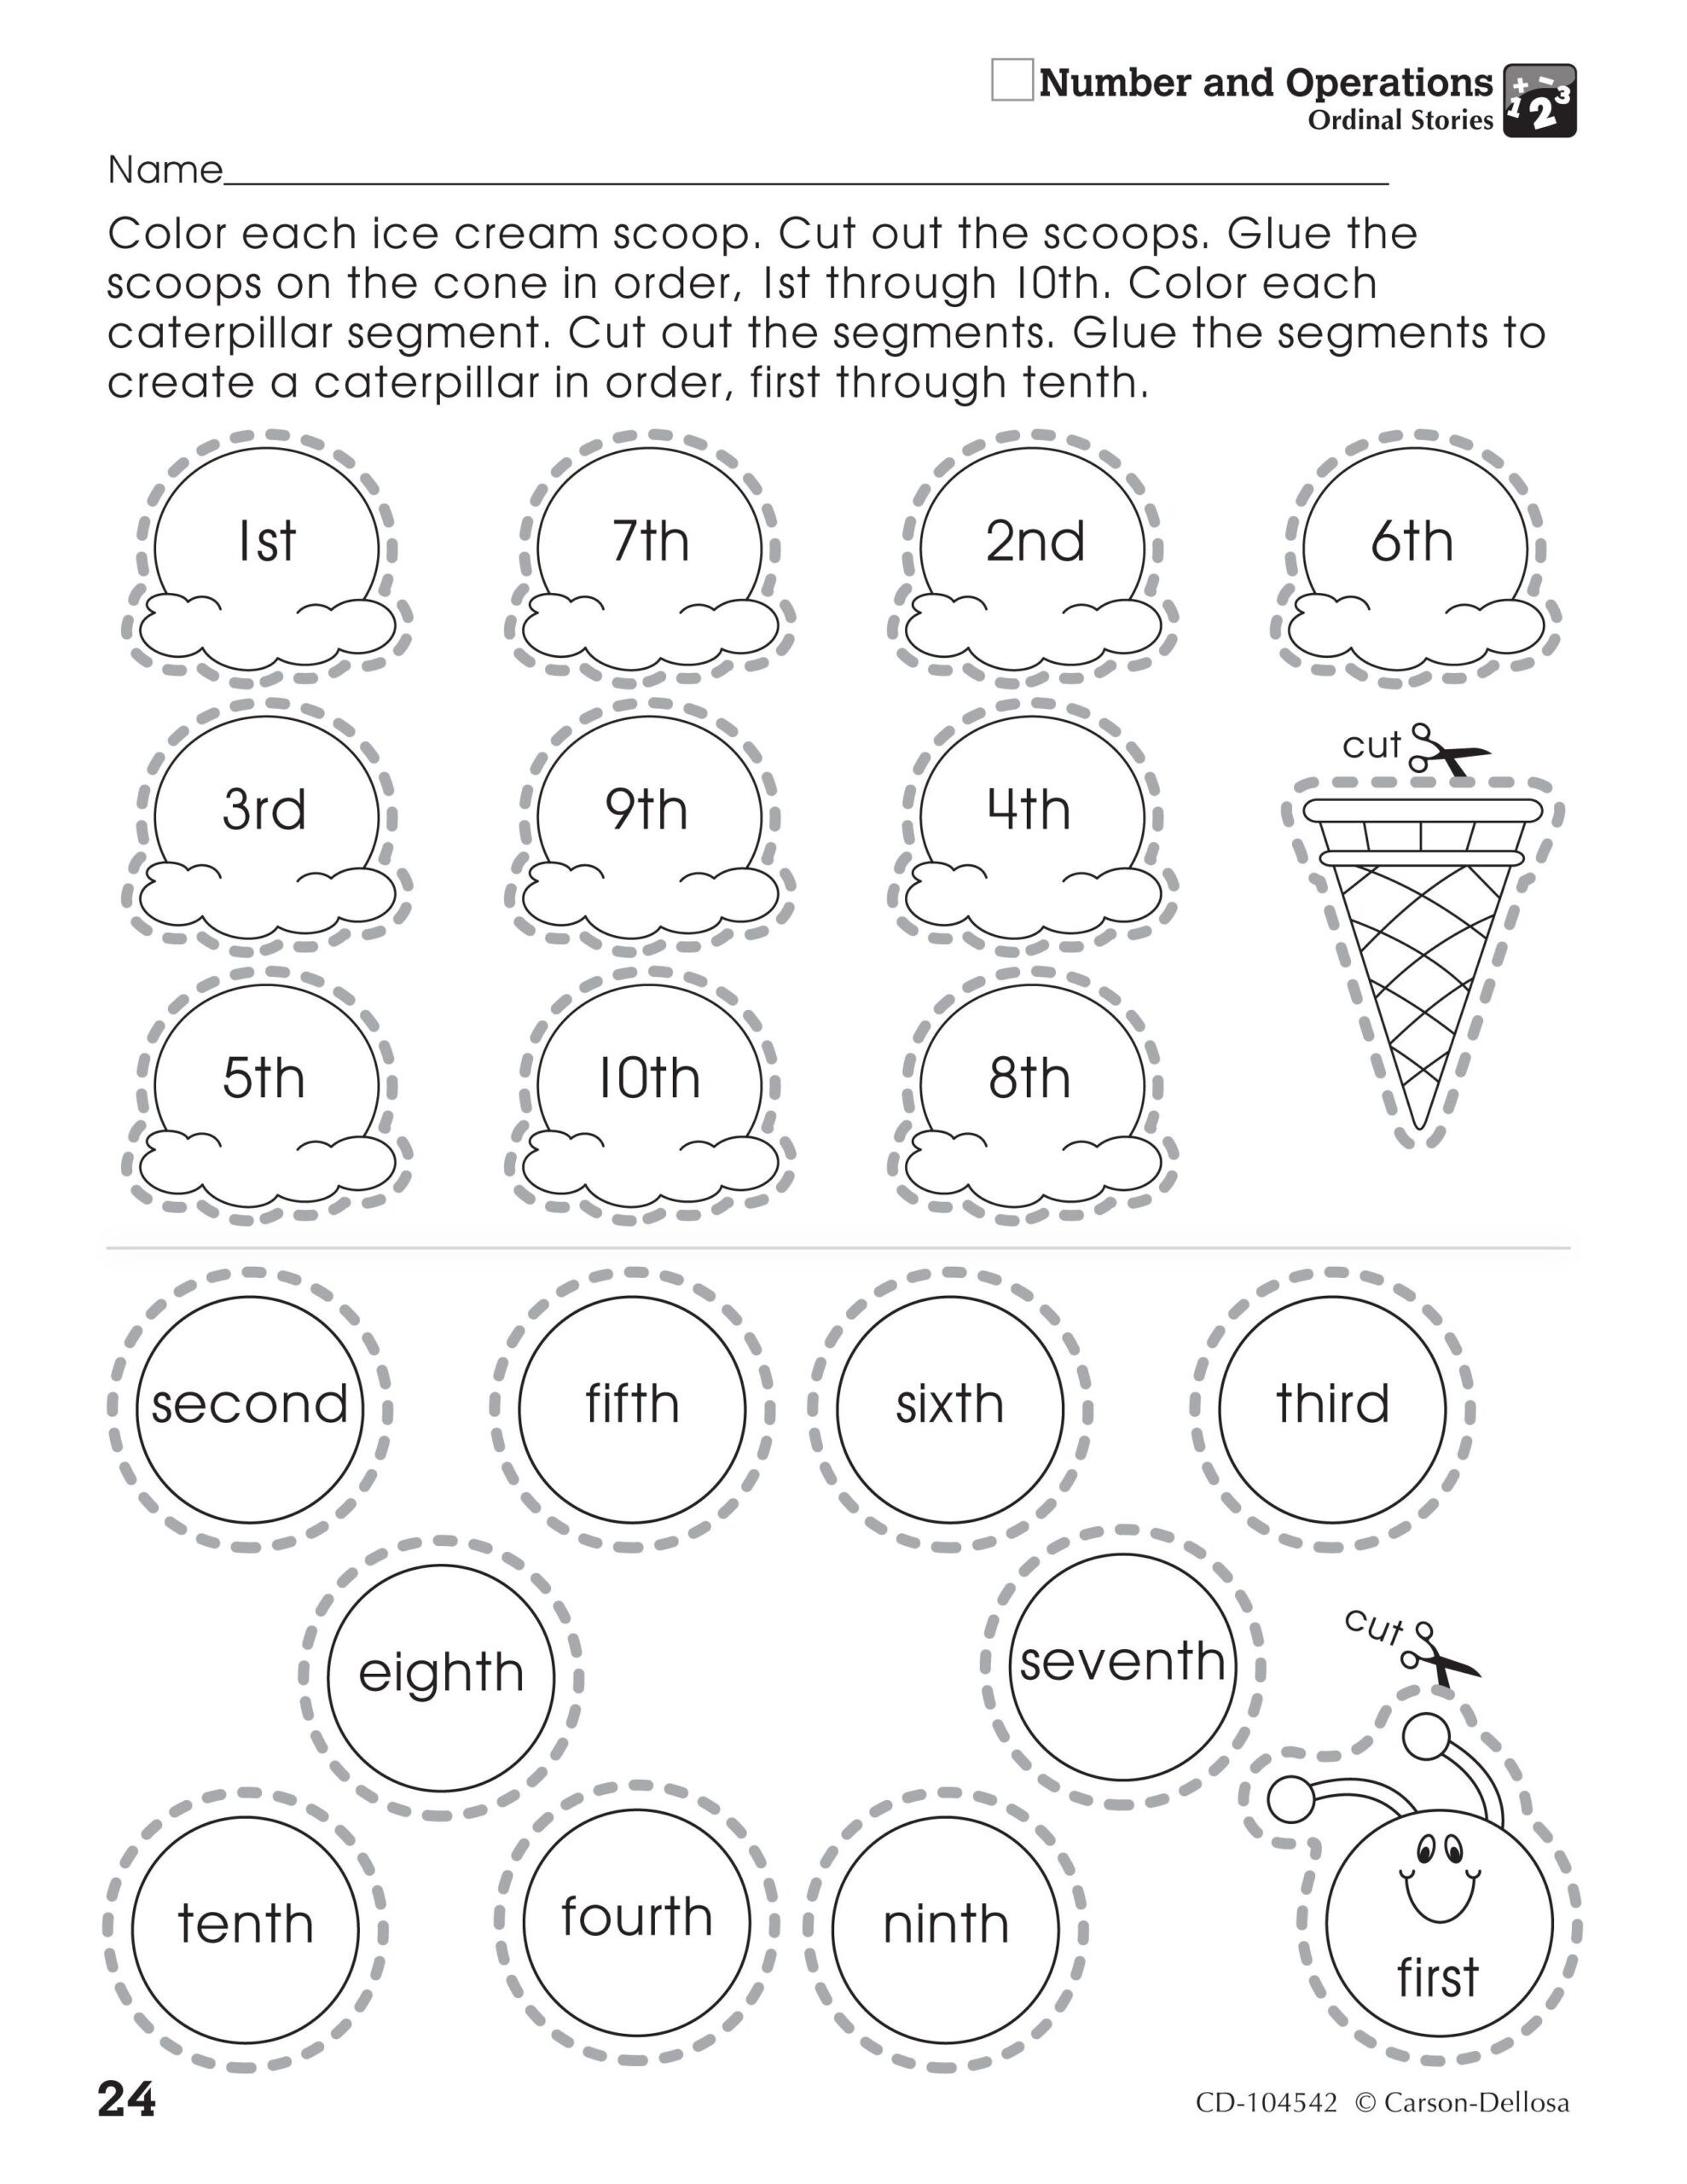 Polygon Worksheets 2nd Grade the ordinal Stories Activity Sheet Helps assist Number and